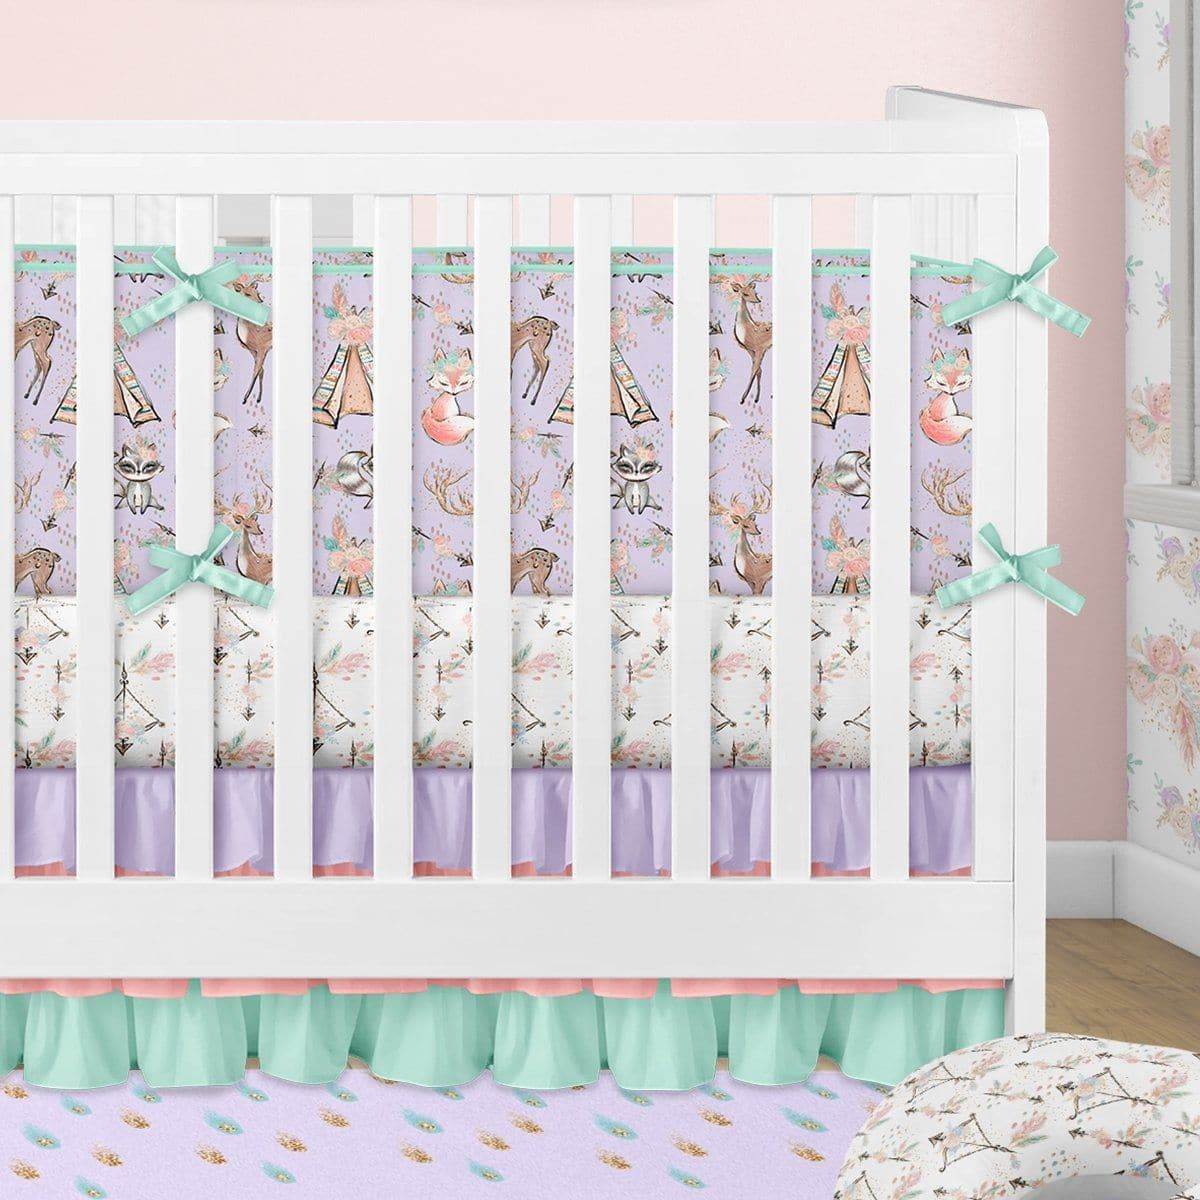 f2bb65c2212d0 Woodland Boho Crib Bedding (3 Pcs: Bumpers, Sheet, Skirt)